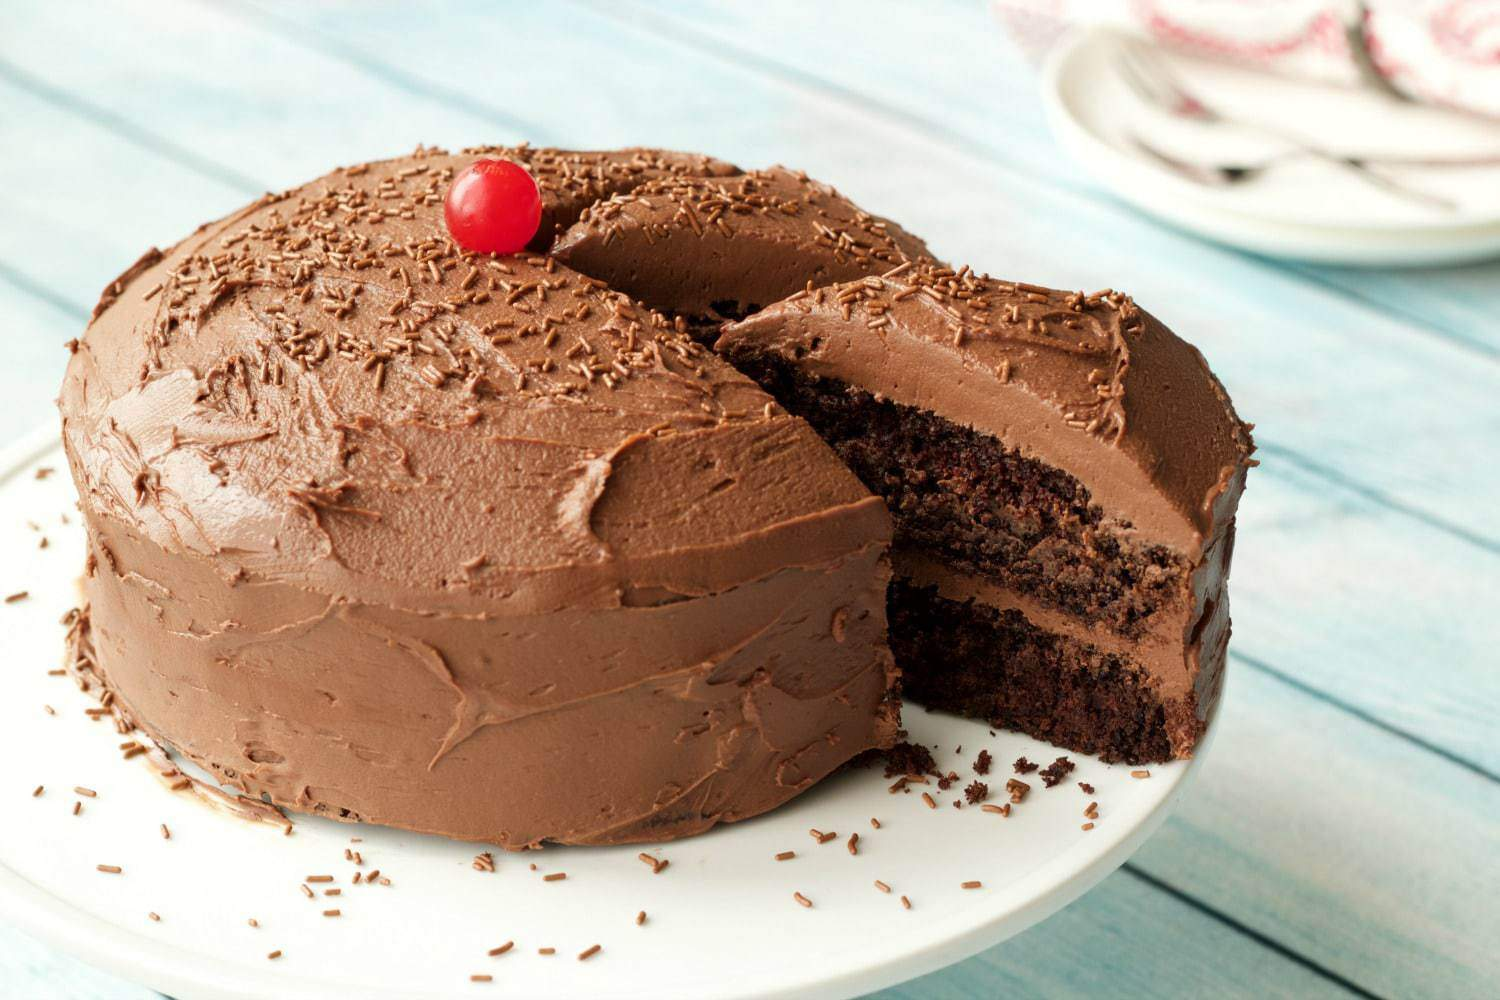 Gluten-Free Chocolate Cake With Coconut Oil, Chocolate Frosting and ...